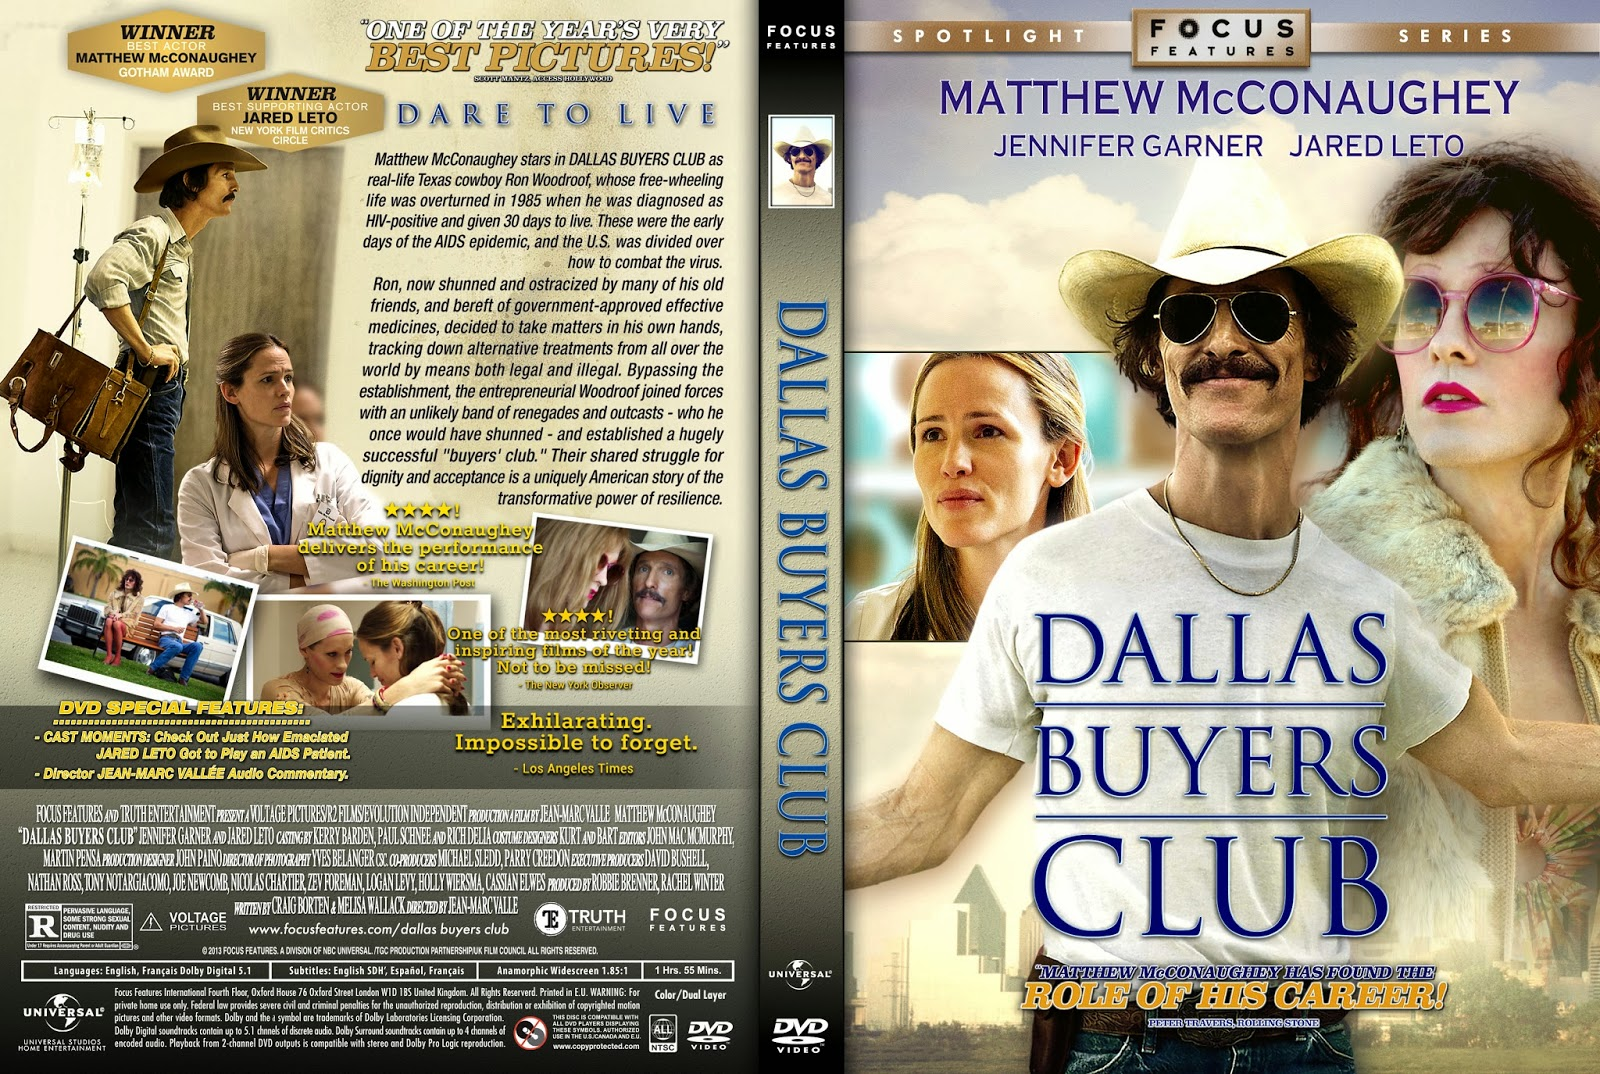 DVD COVERS AND LABELS: Dallas Buyers Club DVD COVER  Dallas